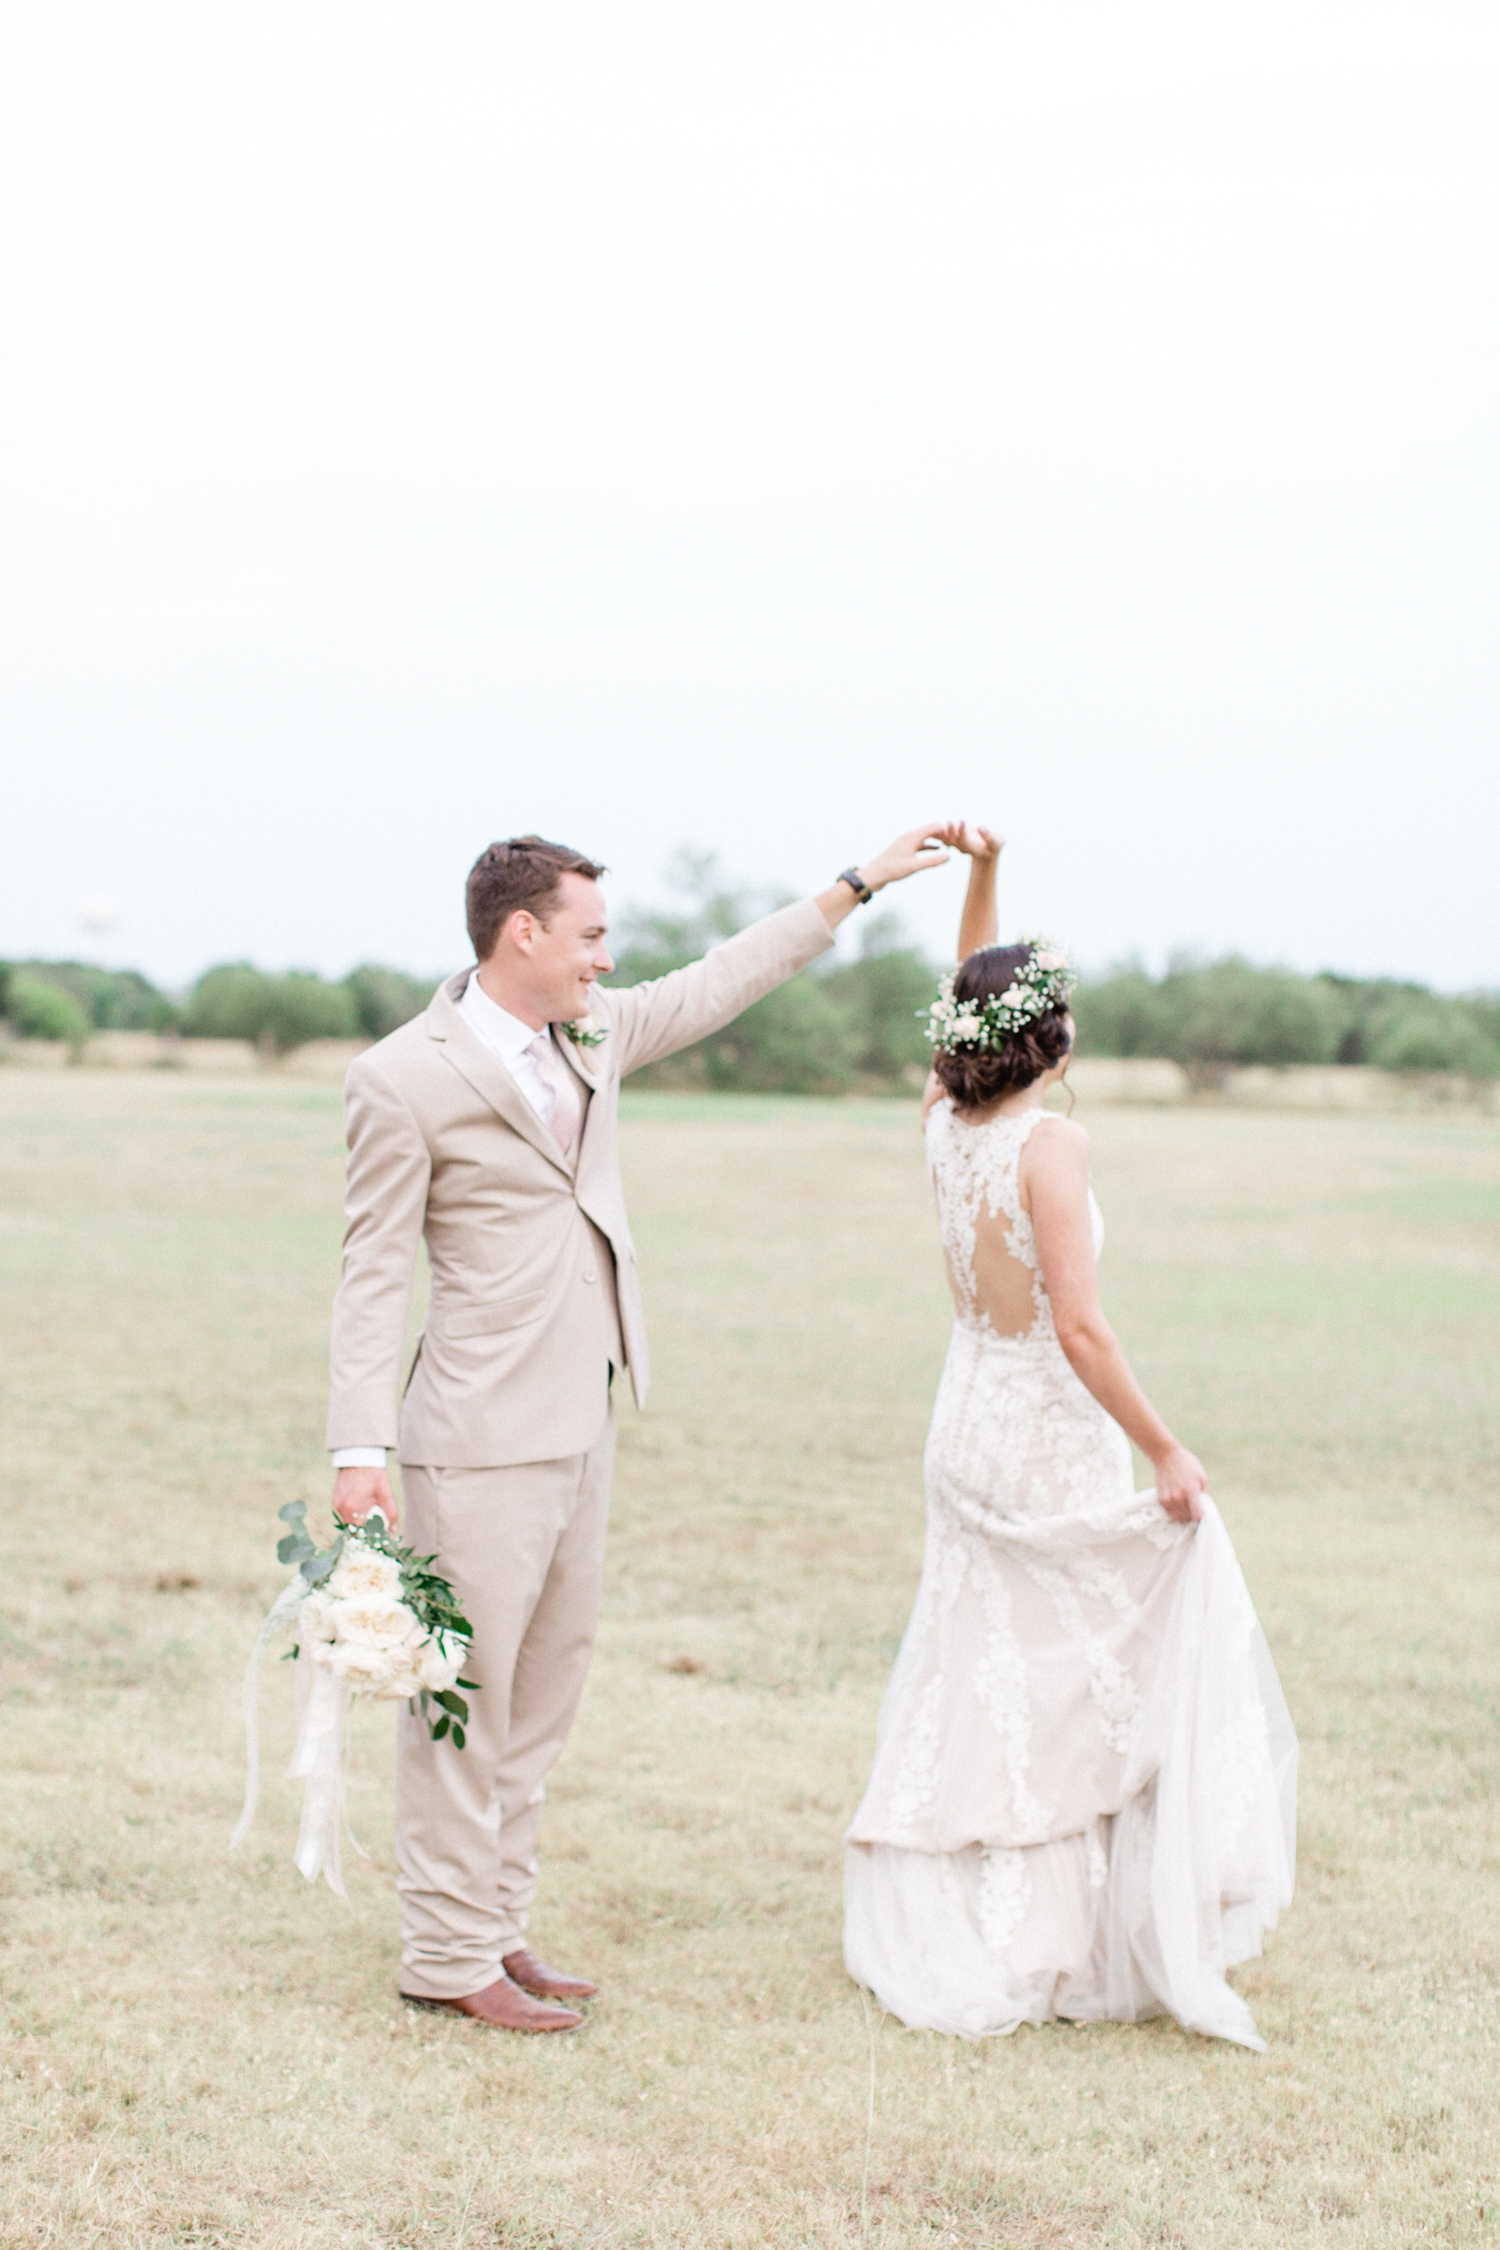 San Antonio Texas Wedding Engagement Photographer Photography Hill Country Texas Old Town Red Bud Hall Summer Blush Ivory Tan Rustic Classic Elegant Wedding San Antonio Austin Texas photographer 61